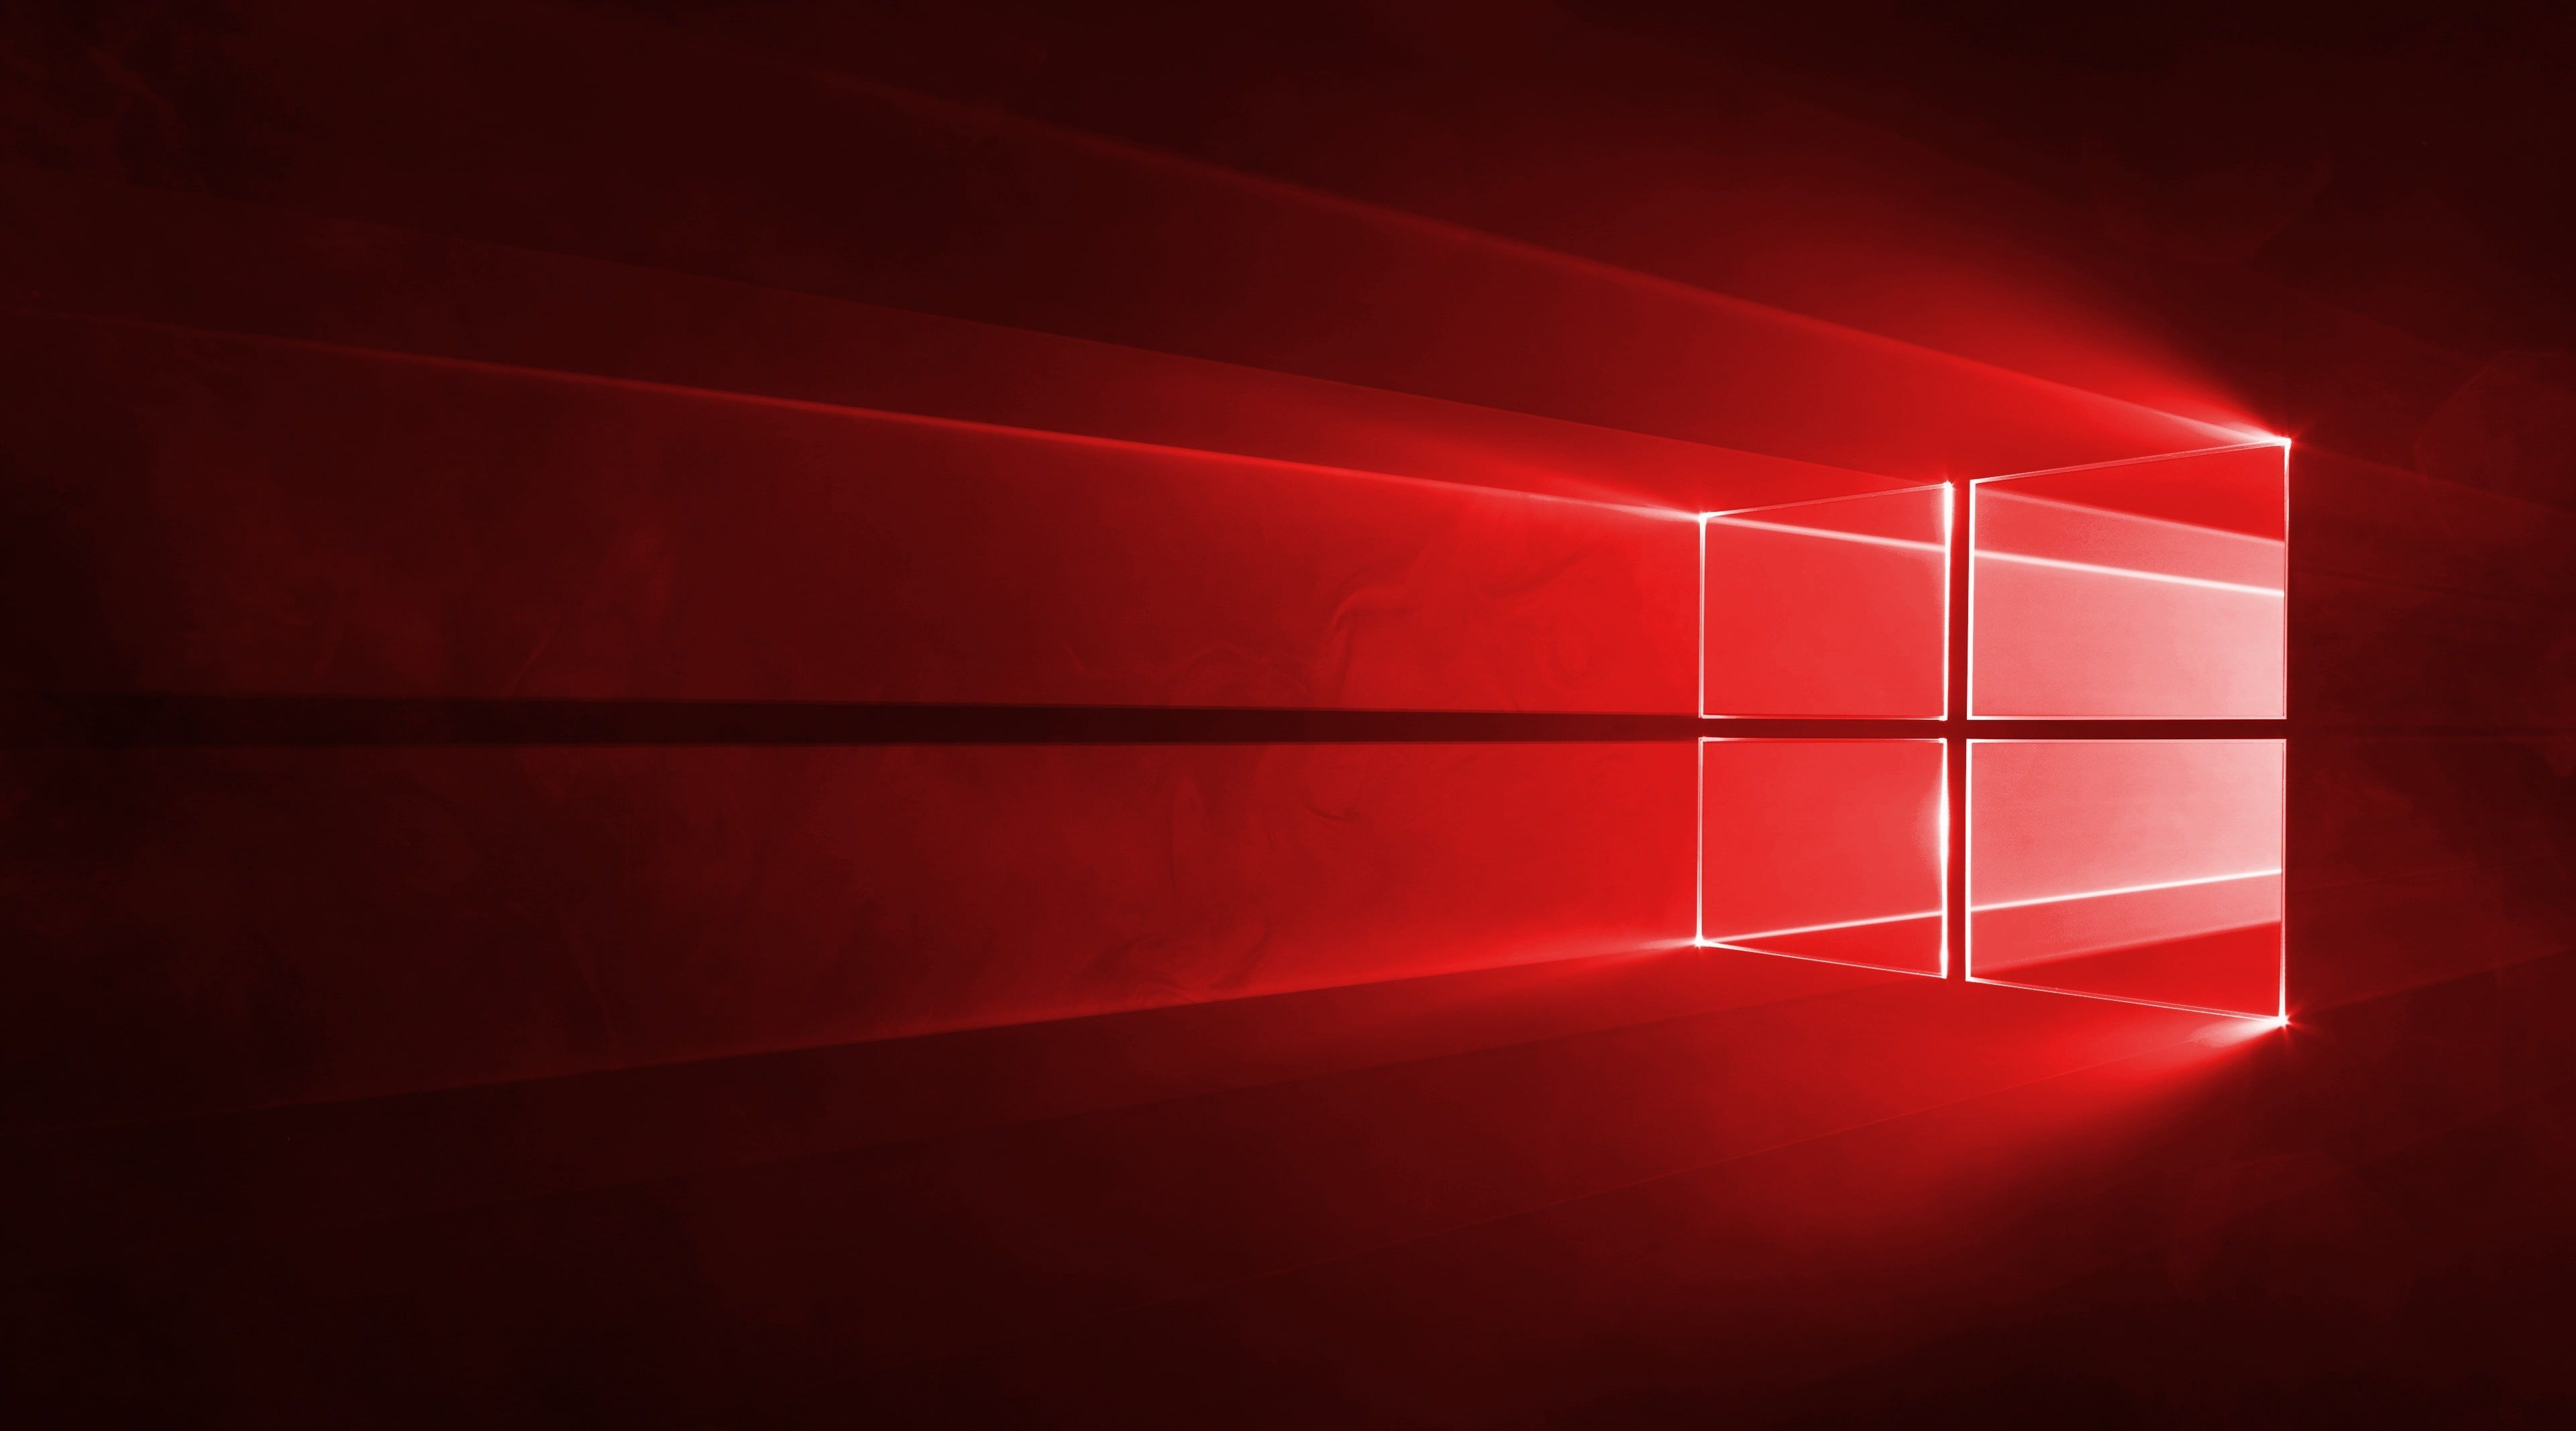 Windows 10 Red In 4k Windows Windows 10 Windows Windows 10 4k